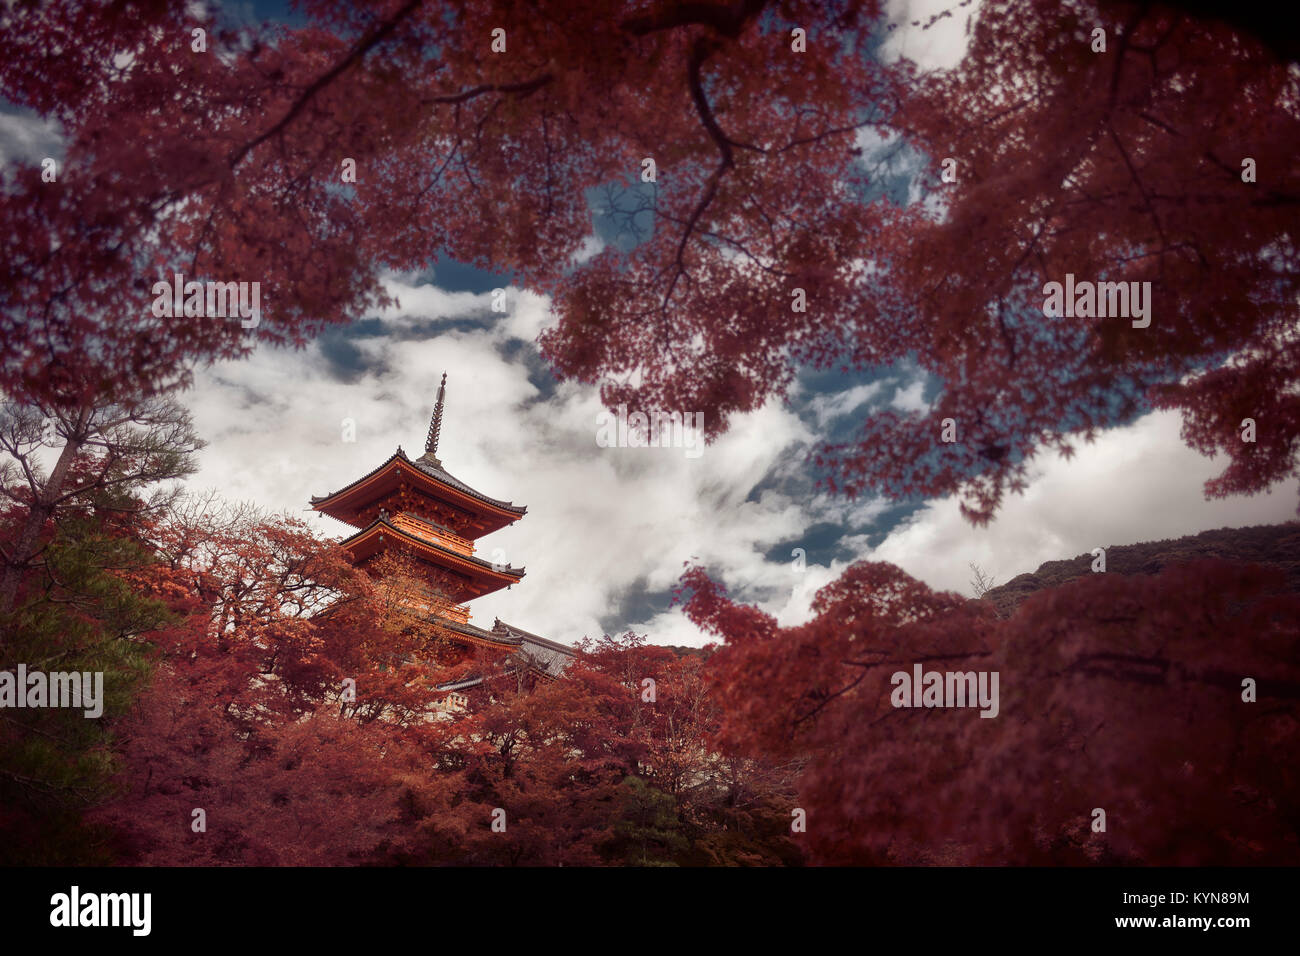 Dramatic artistic photograph of Sanjunoto pagoda of Kiyomizu-dera Buddhist temple in Kyoto, Japan in a beautiful - Stock Image